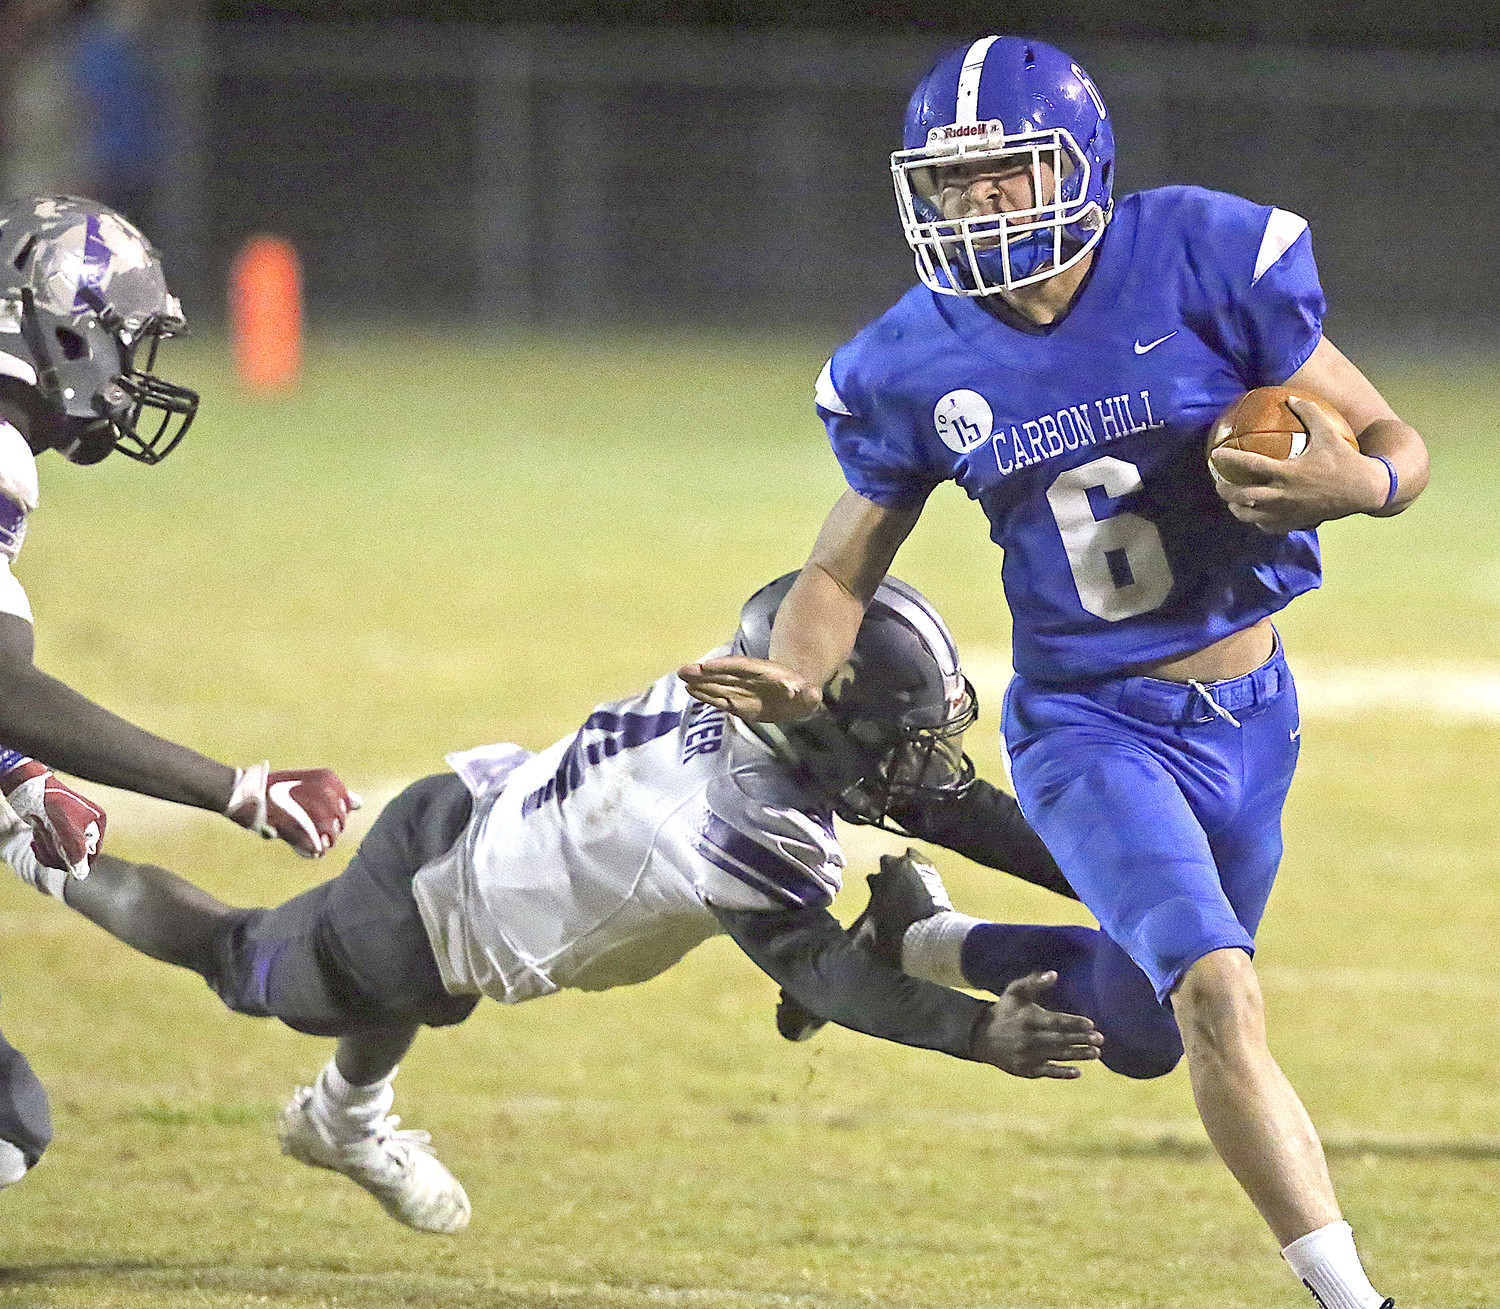 Carbon Hill's Devon Daniel (6) looks to evade a Holt defender on Thursday.